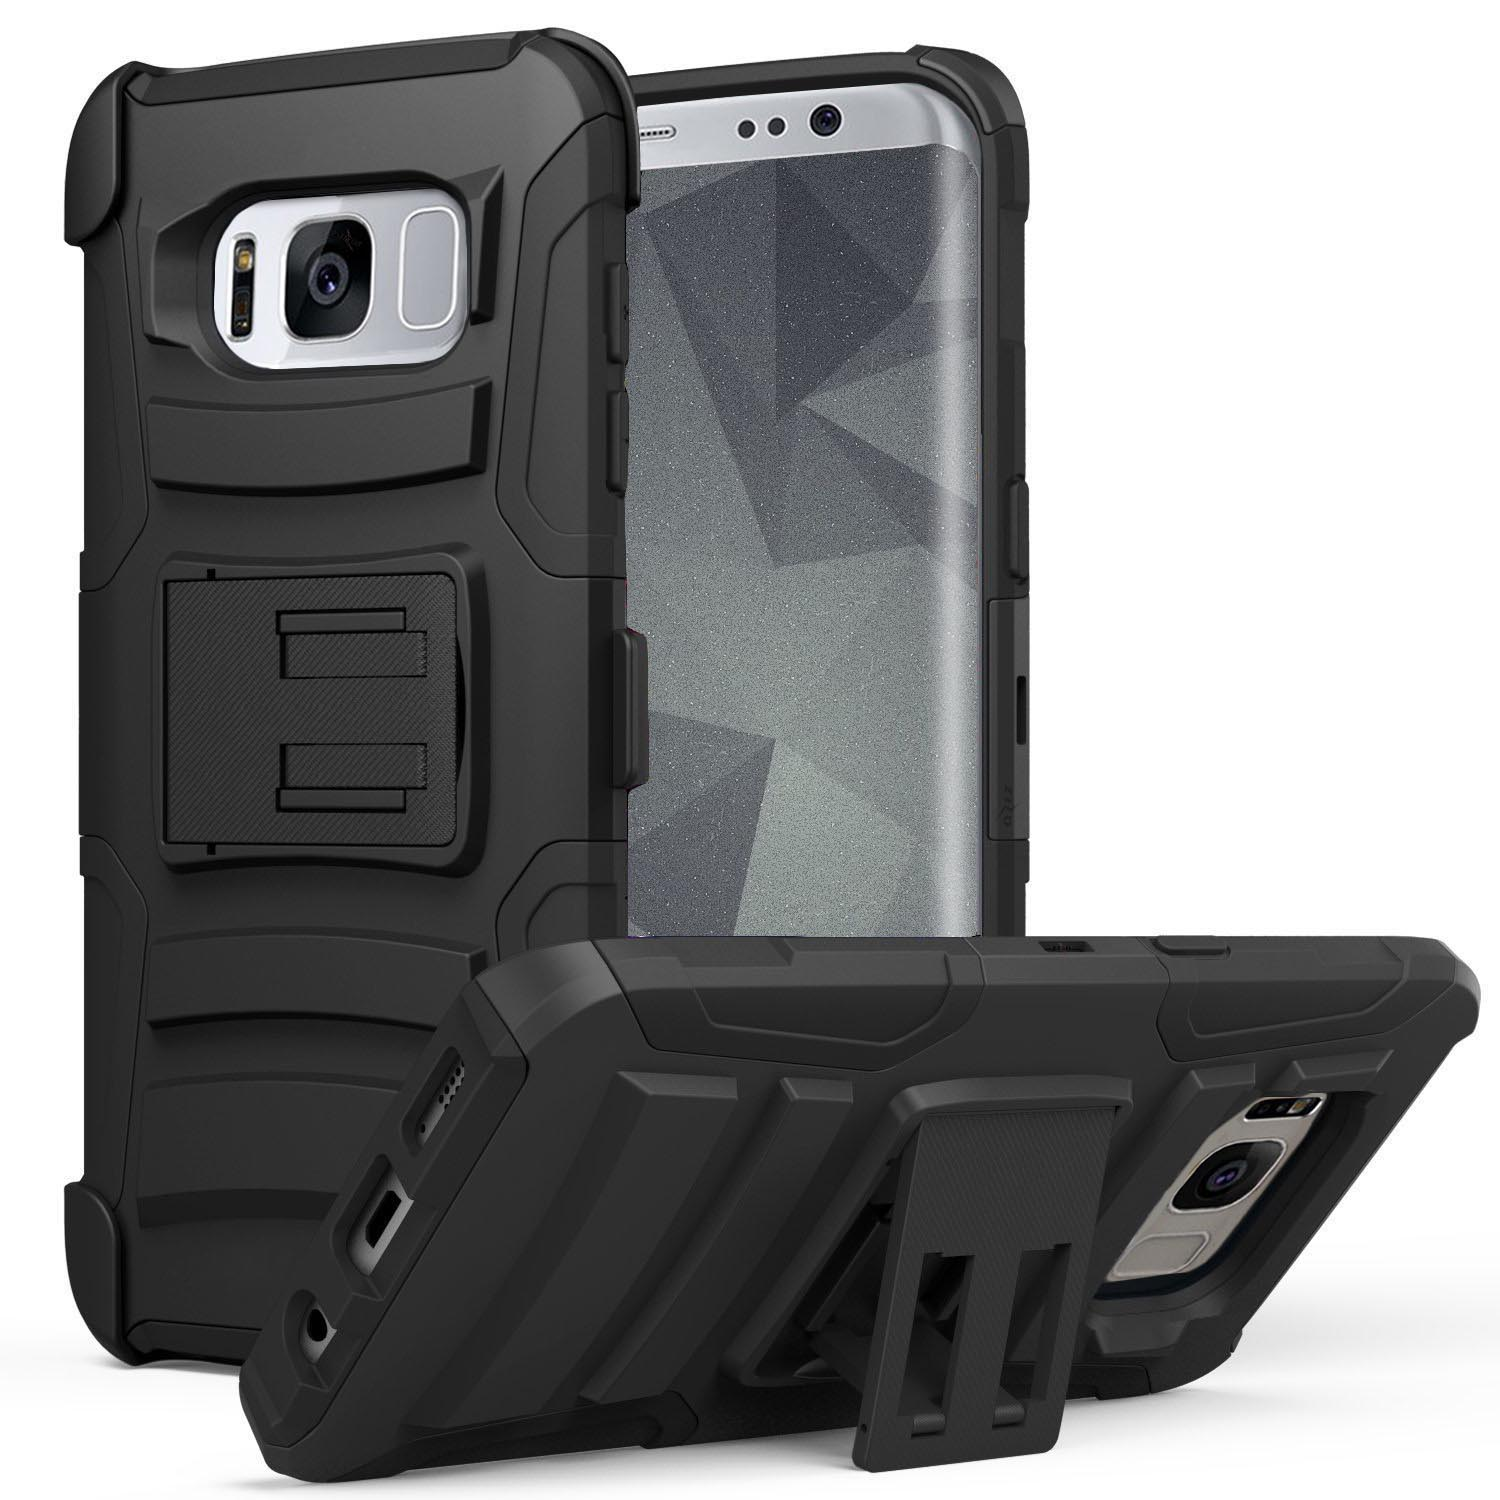 Samsung Galaxy S8 / S8+ Case, ZV Heavy Duty Armor - Kickstand and Holster